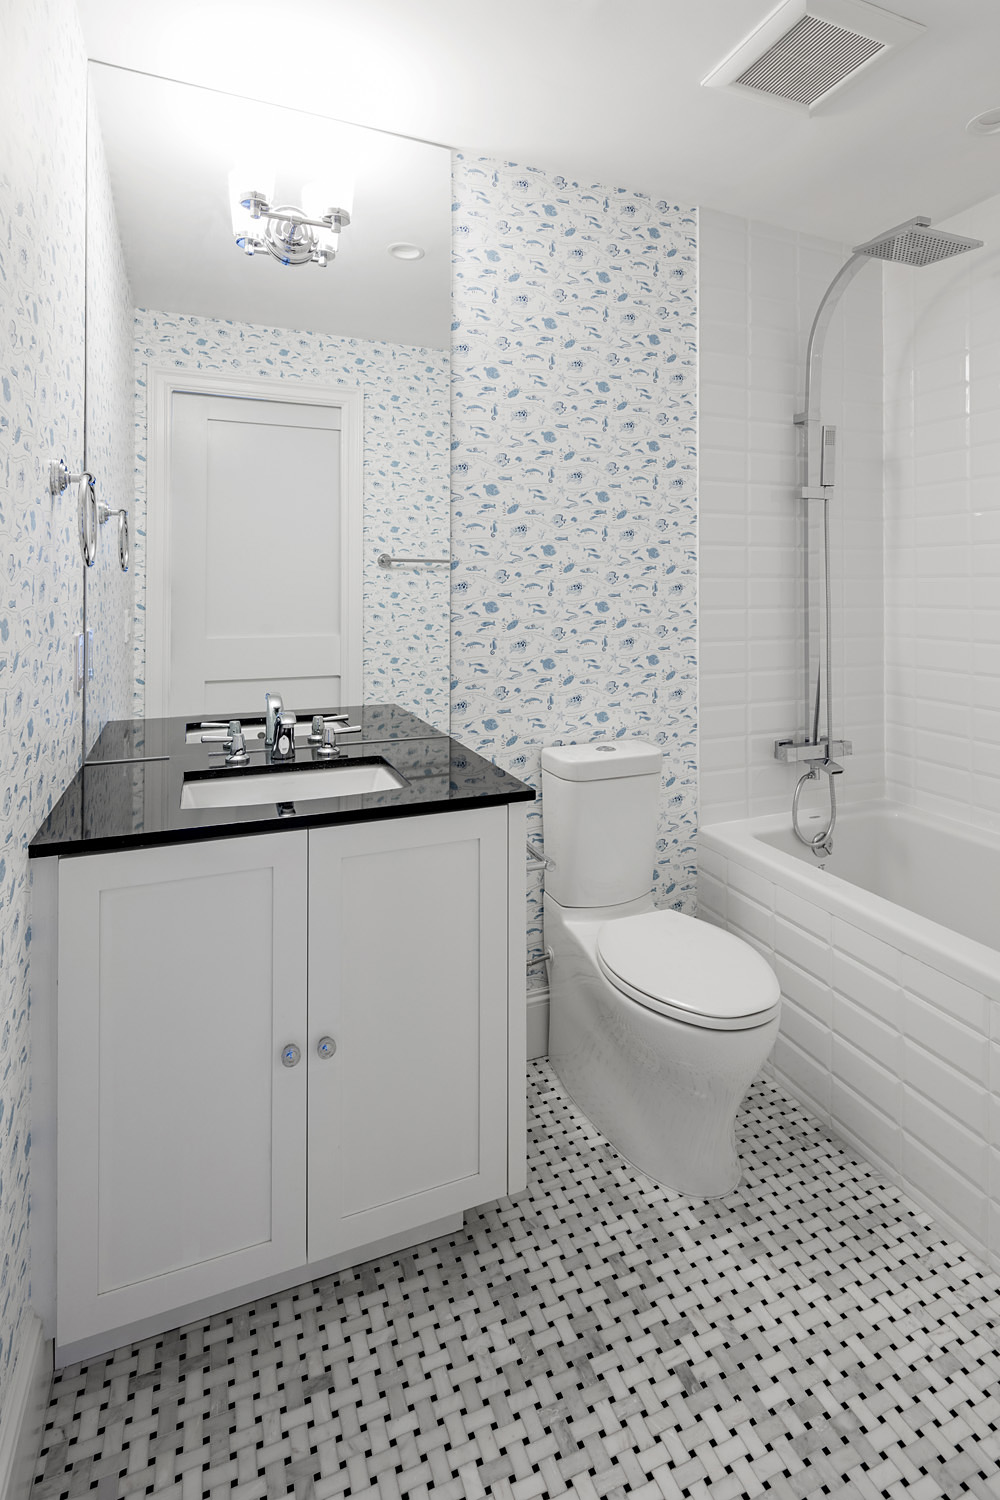 2 - Bathroom 2nd.jpg